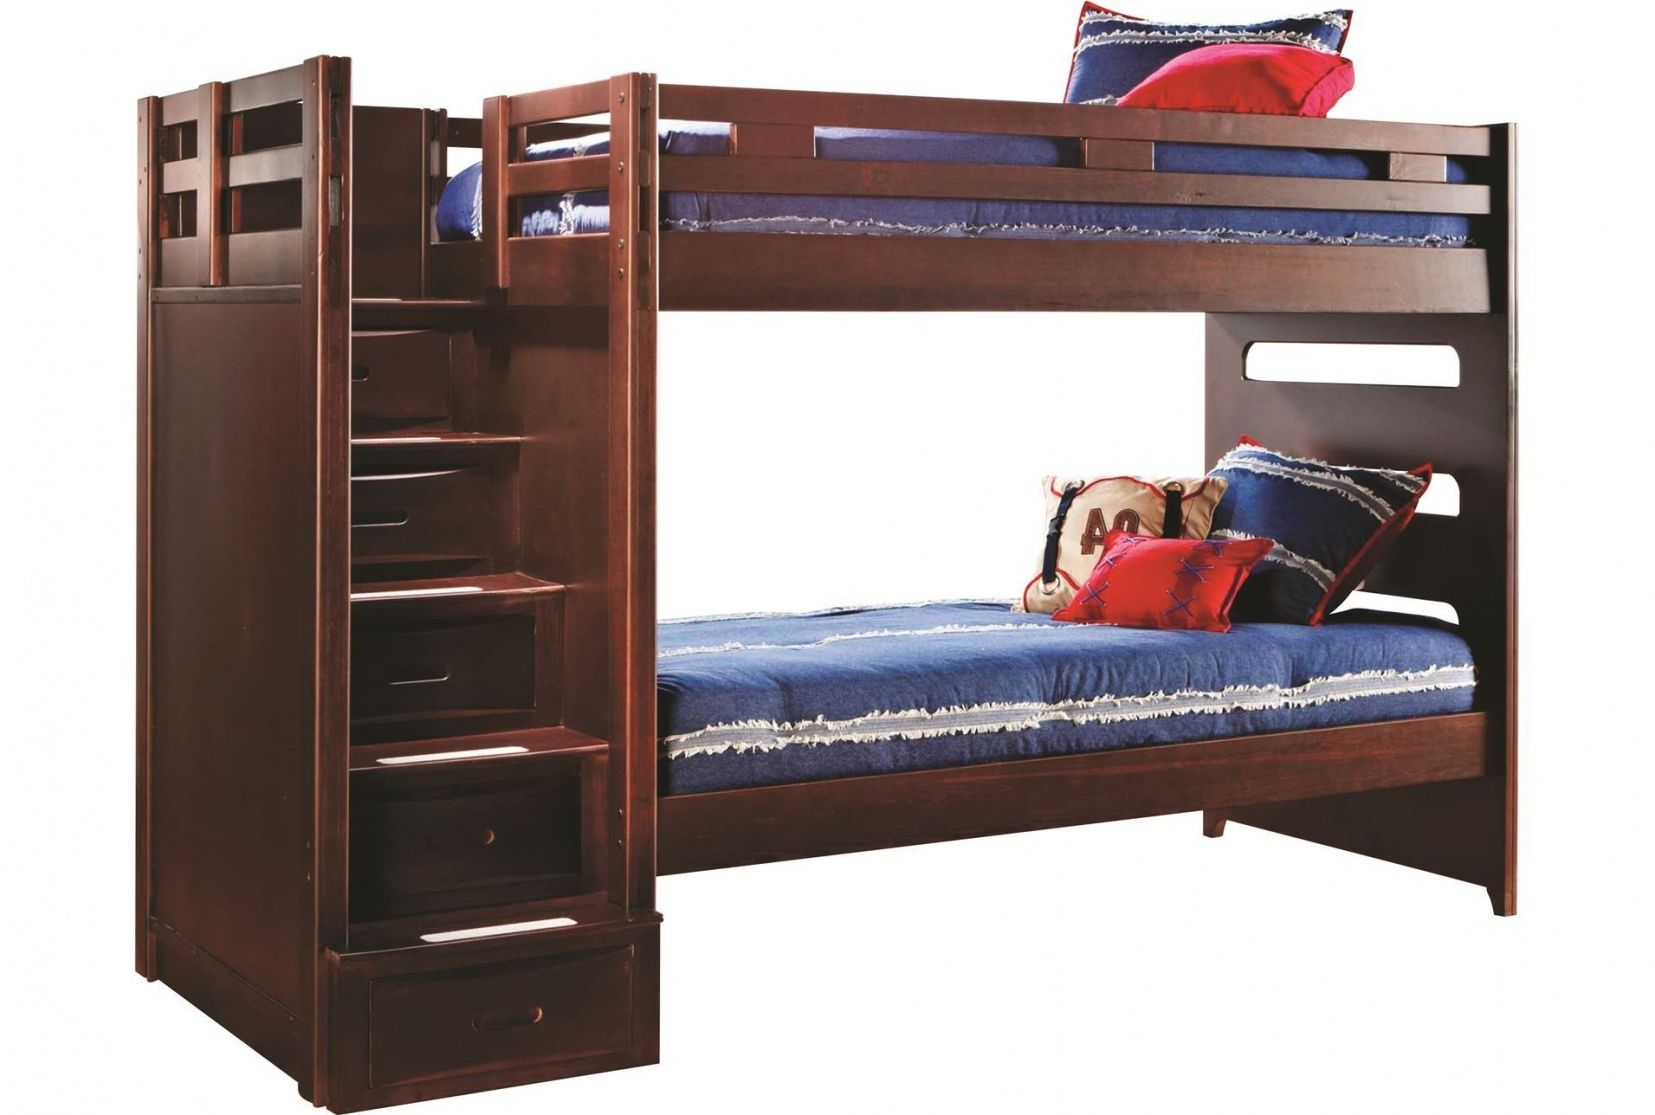 Pin By Hendro Birowo On Modern Design Low Budget Bunk Beds Bed